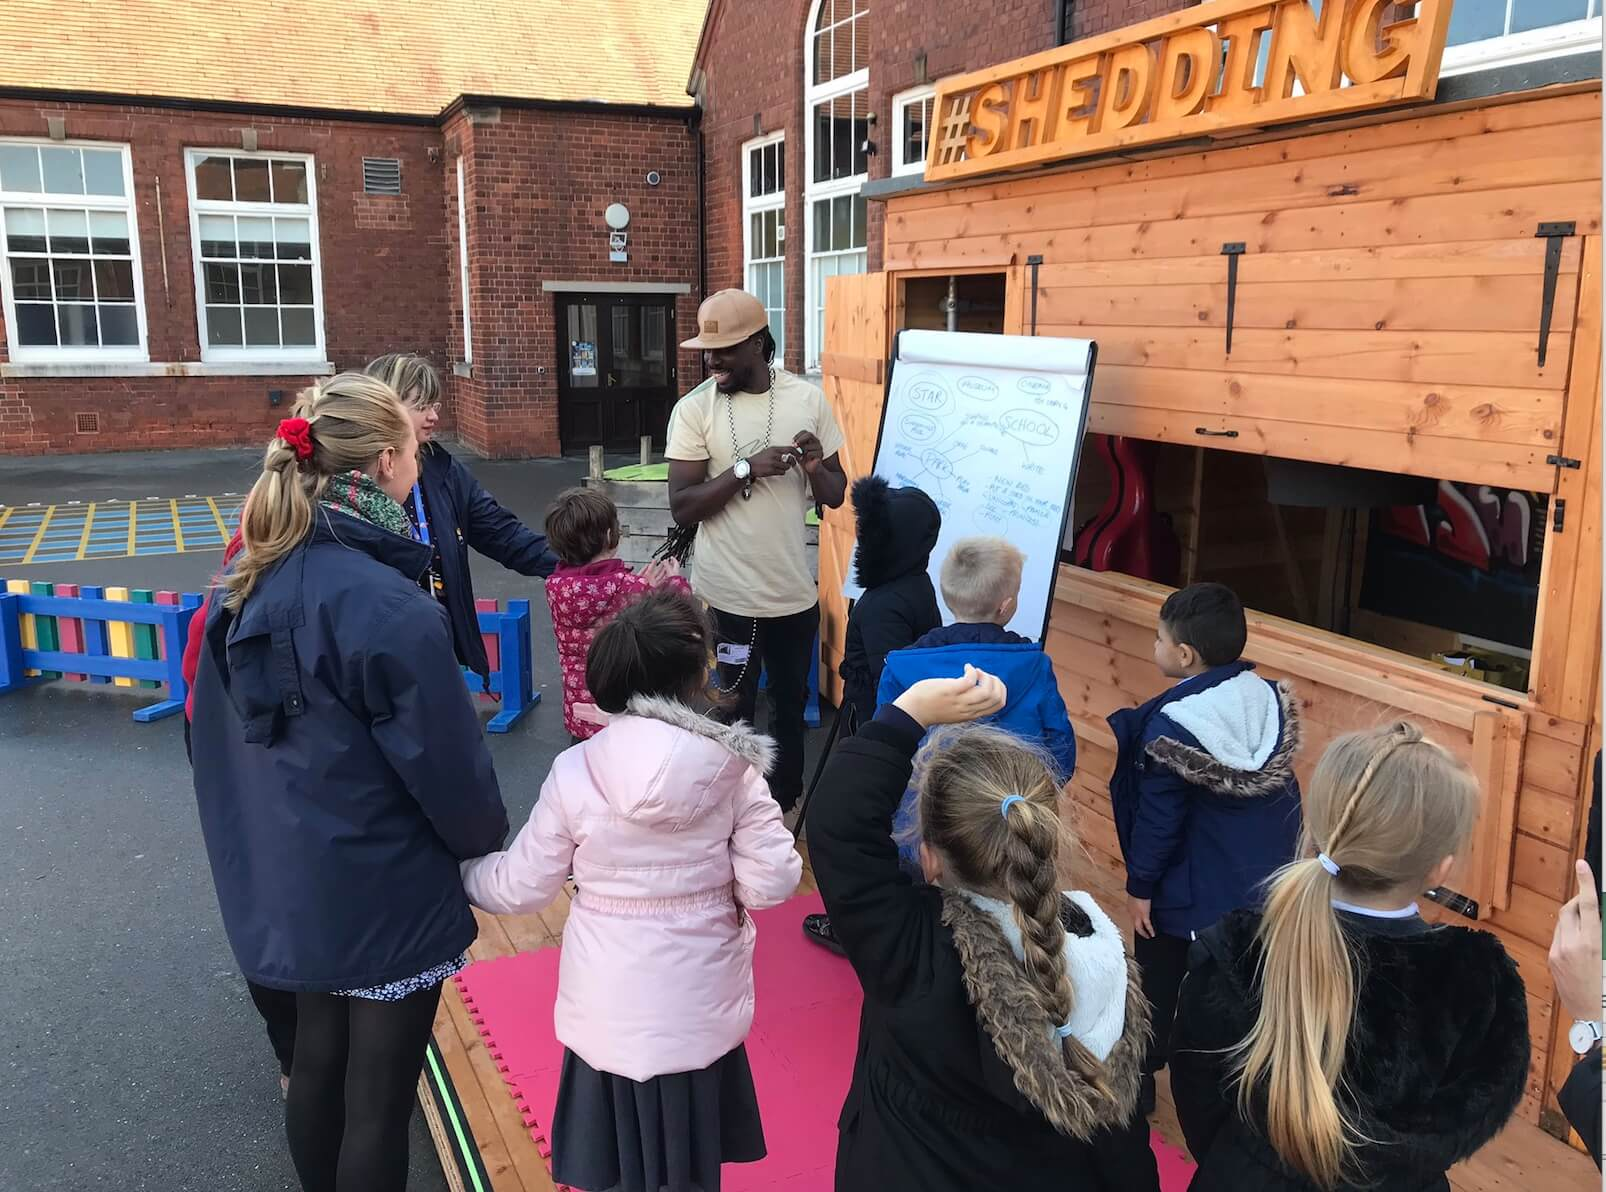 Primary school children engage with a facilitator beside S.H.E.D in a school playground